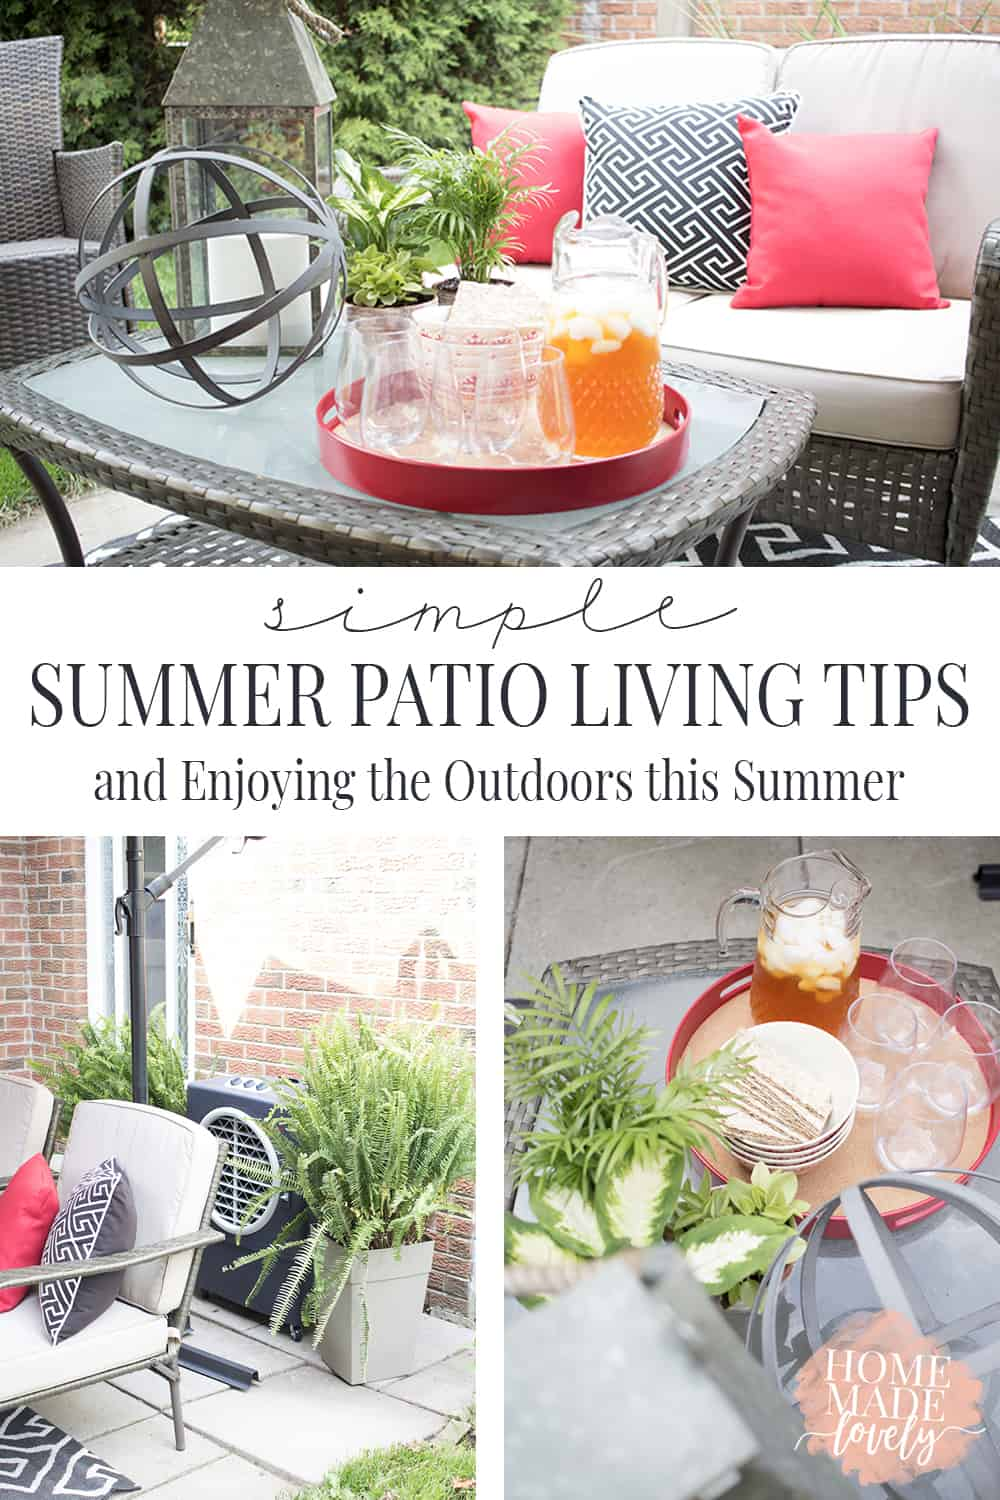 Easily refresh your outdoor space with our simple summer patio ideas and stay cool this summer while enjoying the outdoors!